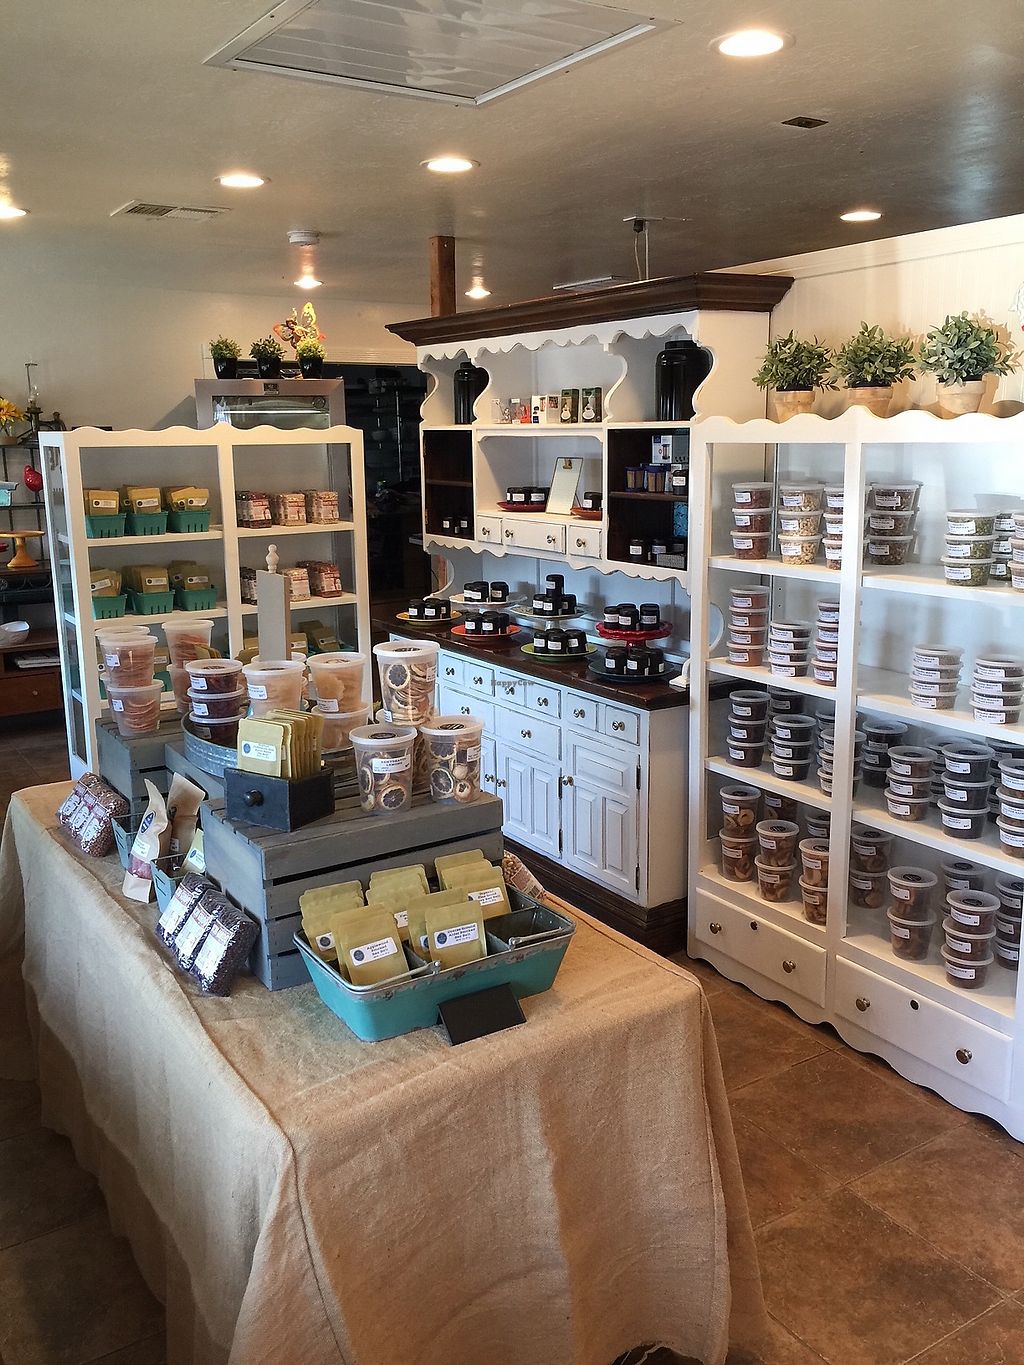 """Photo of Taylor's Provisions  by <a href=""""/members/profile/deltashark"""">deltashark</a> <br/>Pre-packaged items: nuts, seeds, fruits, baking items, teas, and spices <br/> July 15, 2017  - <a href='/contact/abuse/image/96286/280792'>Report</a>"""